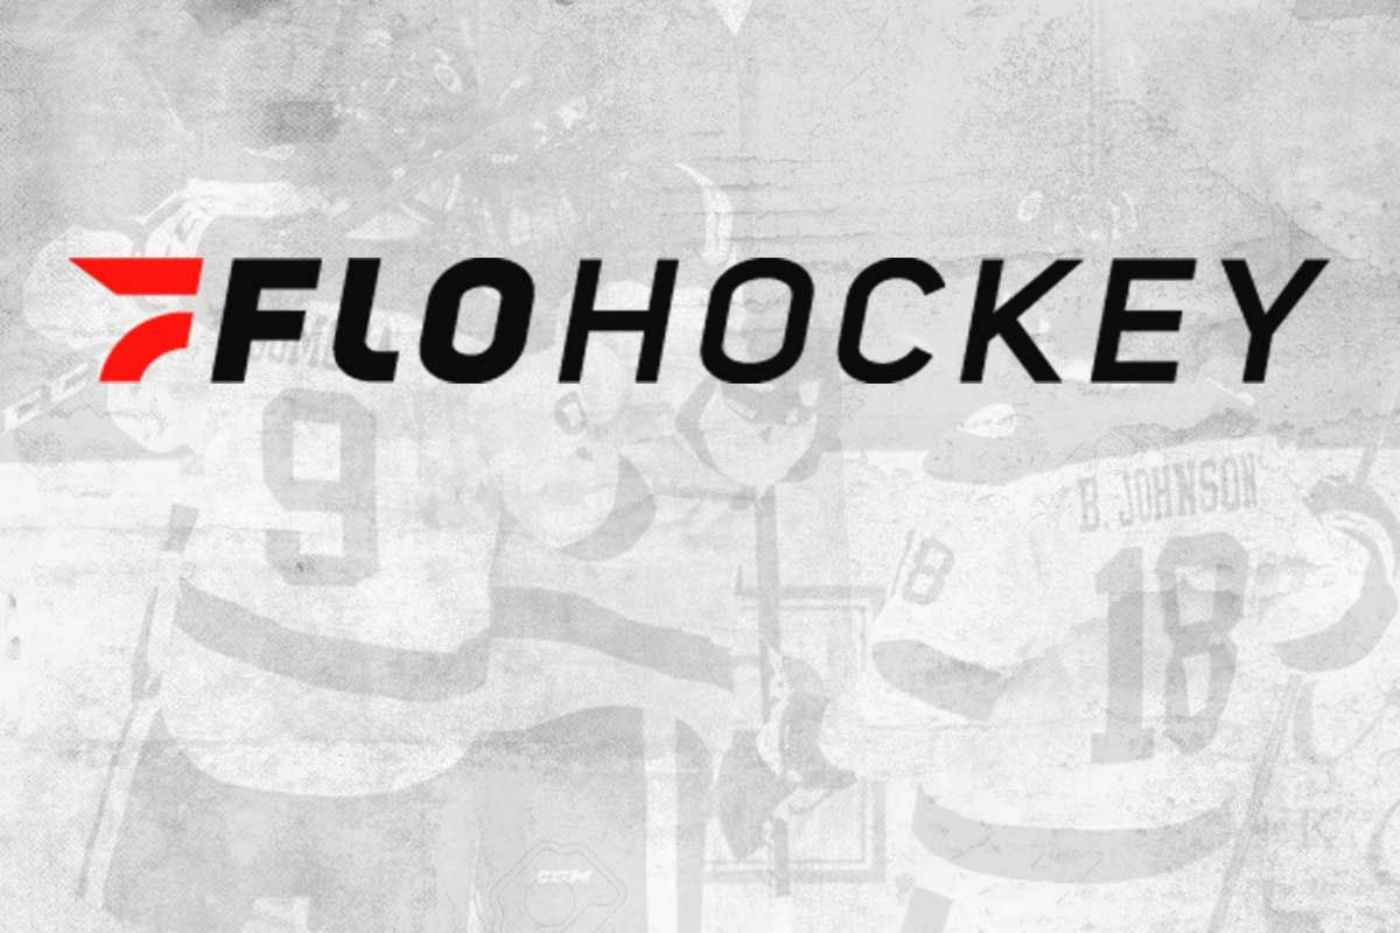 CCHA establishes multi-year streaming rights agreement with FloSports